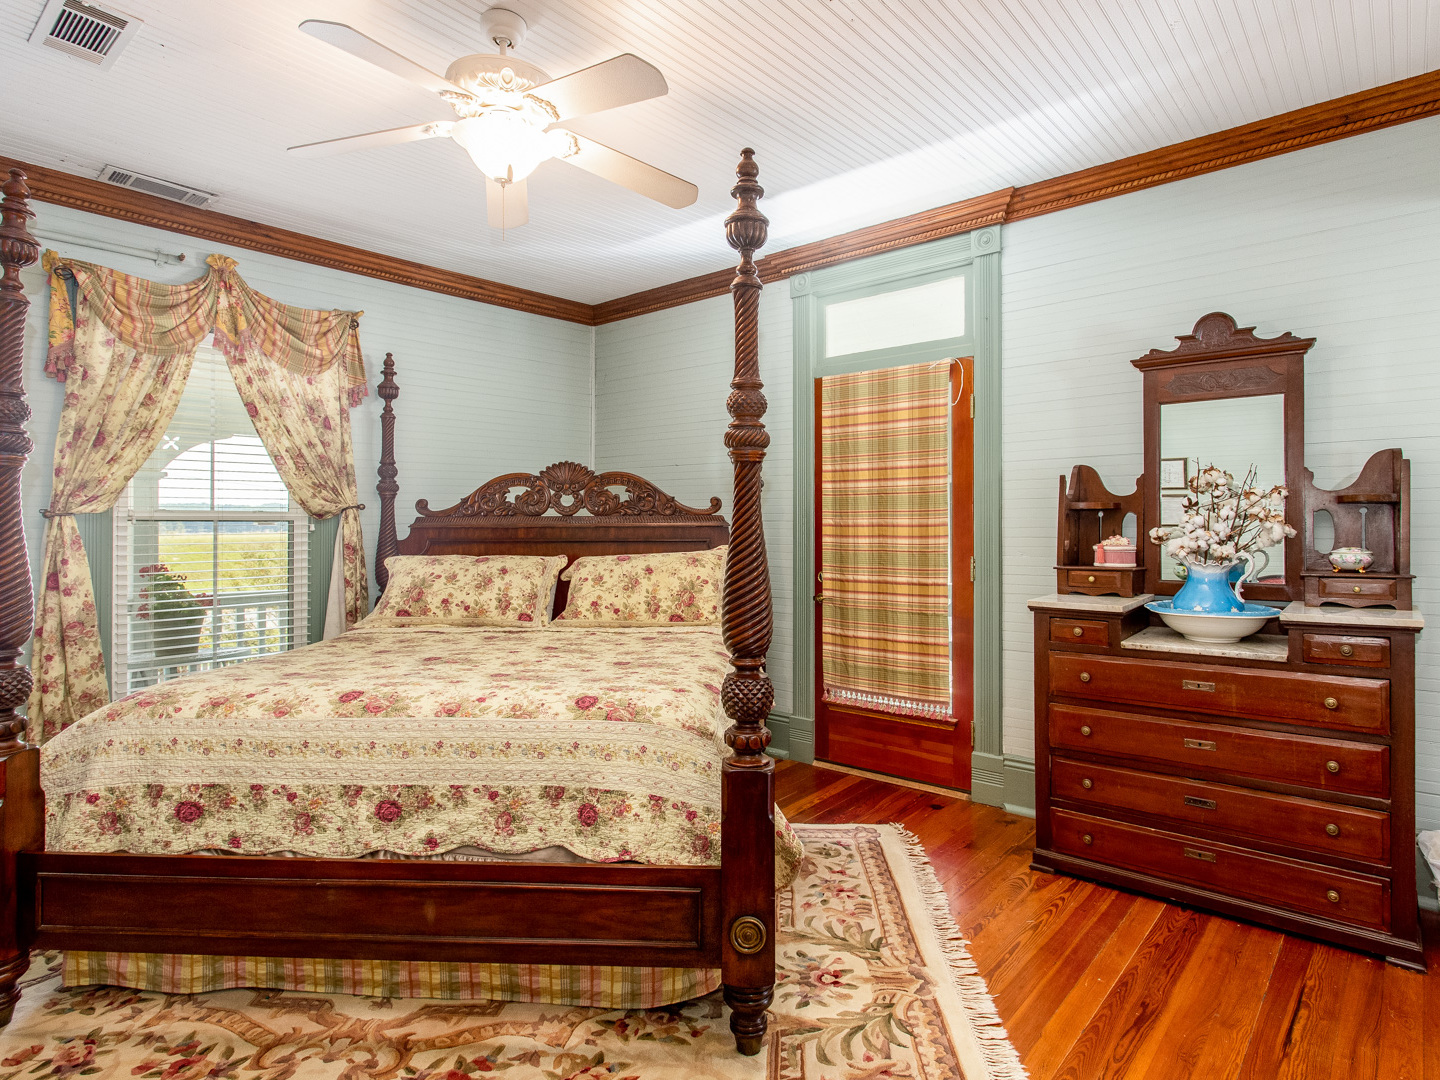 A bedroom with a bed in a room at Lake Allatoona Inn.